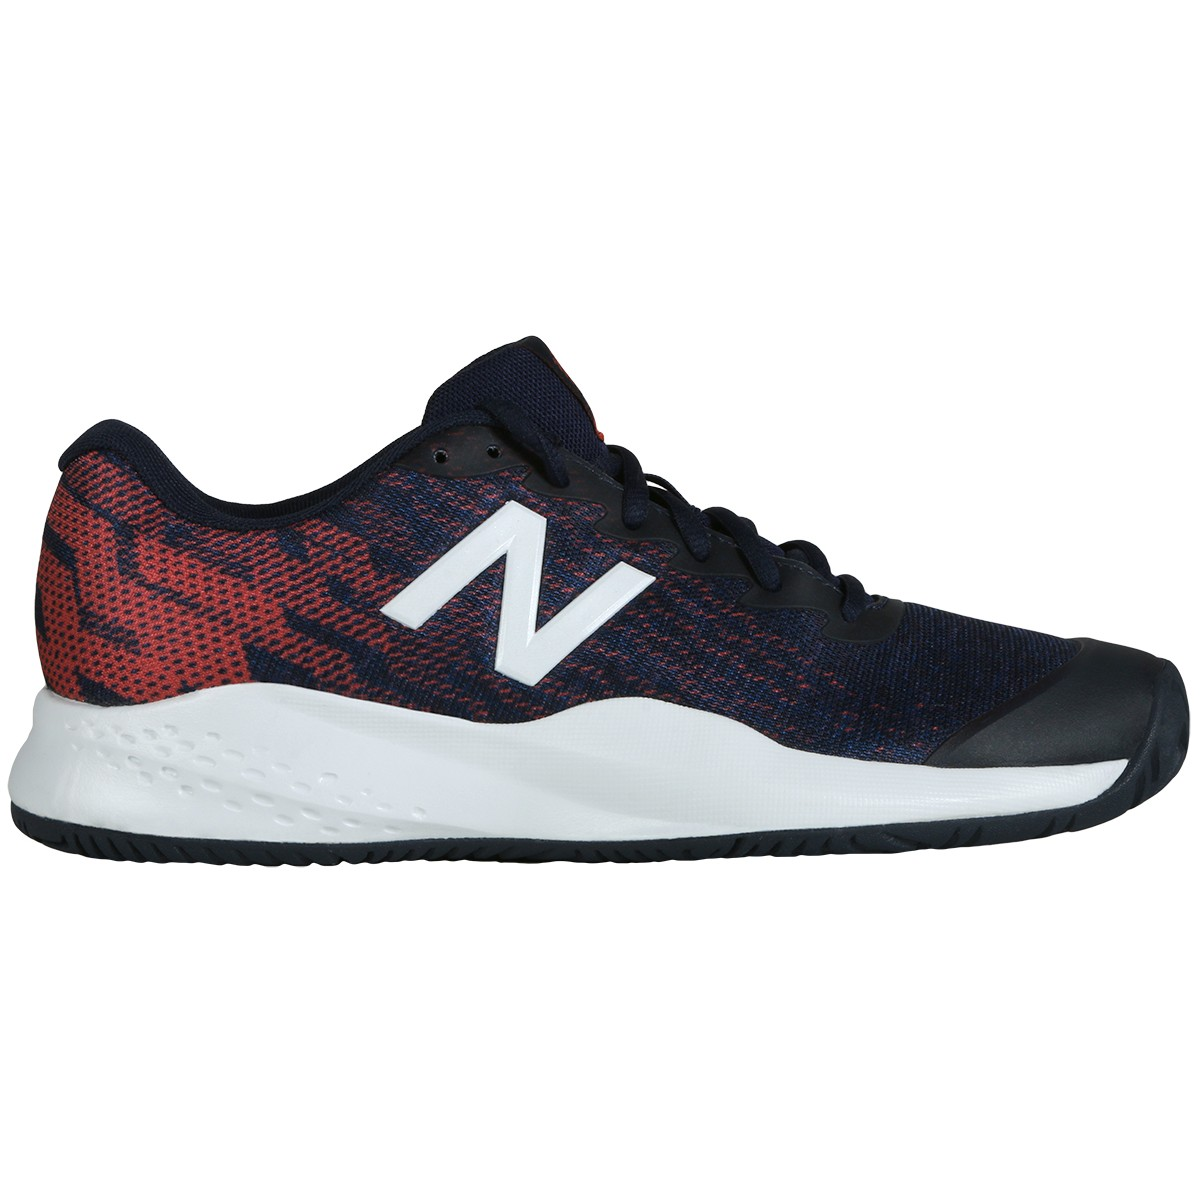 CHAUSSURES NEW BALANCE JUNIOR 996 V3 TOUTES SURFACES